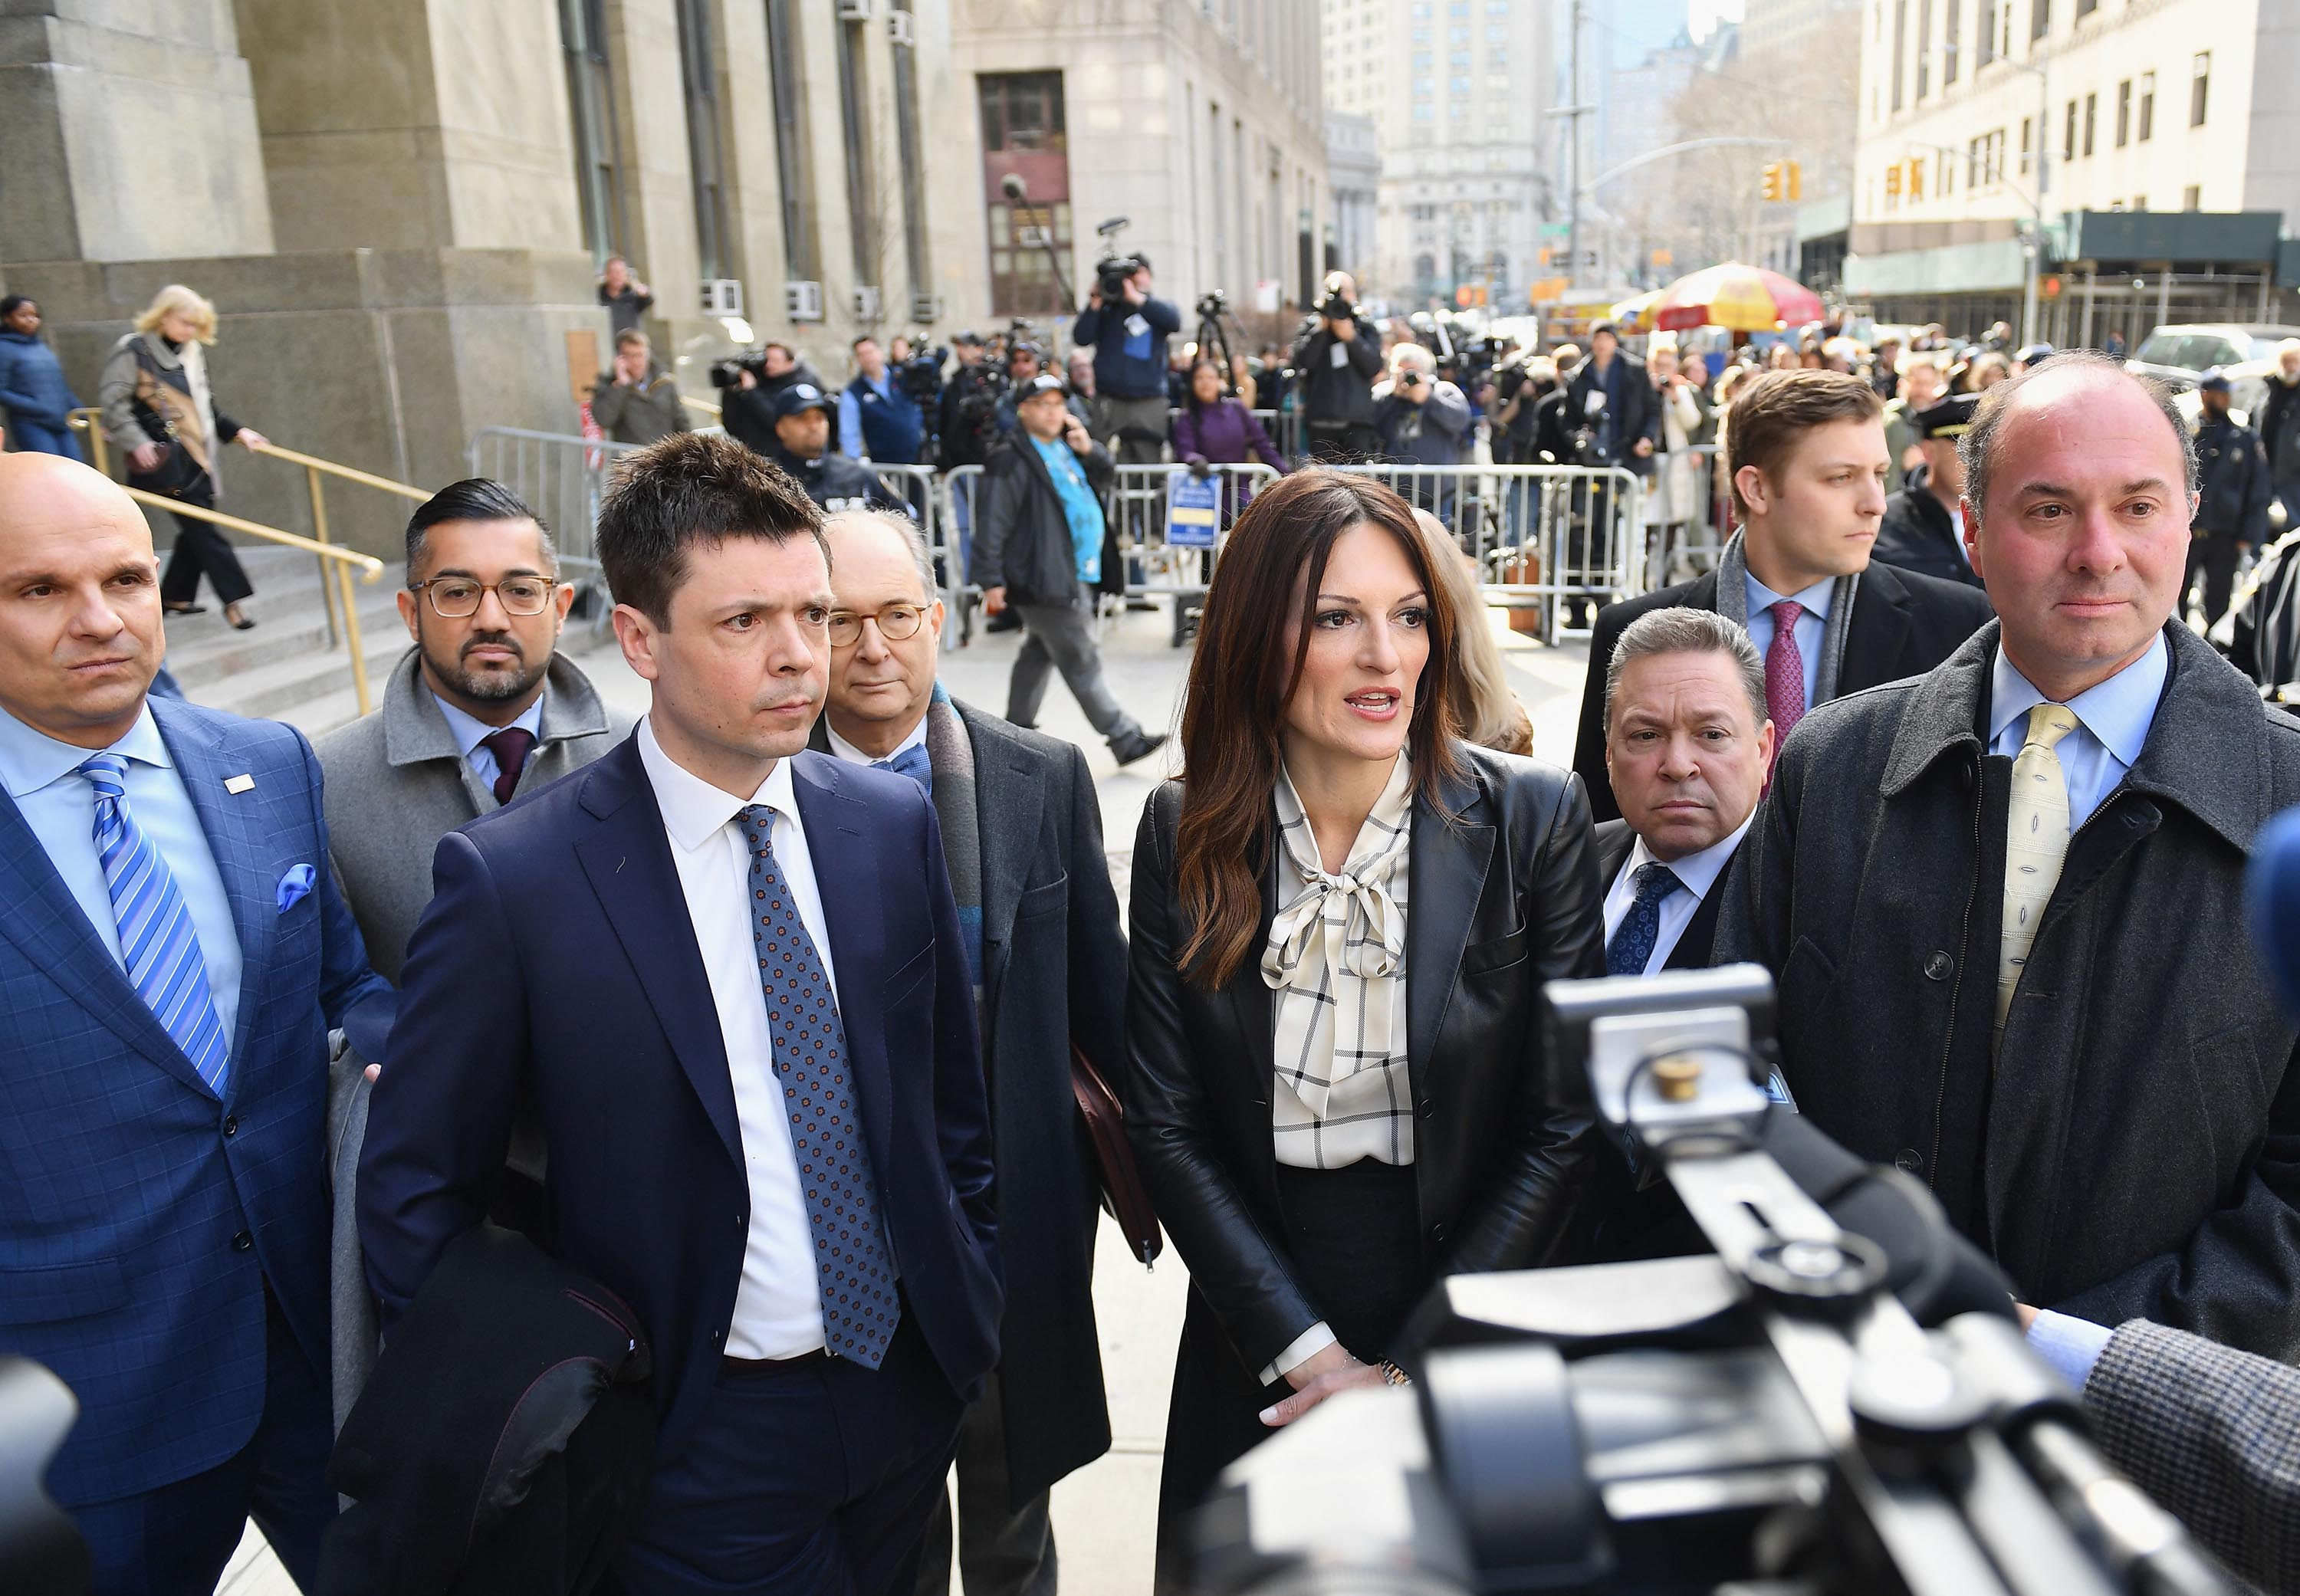 Donna Rotunno, lead defense attorney for Harvey Weinstein, leaves the Manhattan Criminal Court, on February 24, 2020 in New York City.